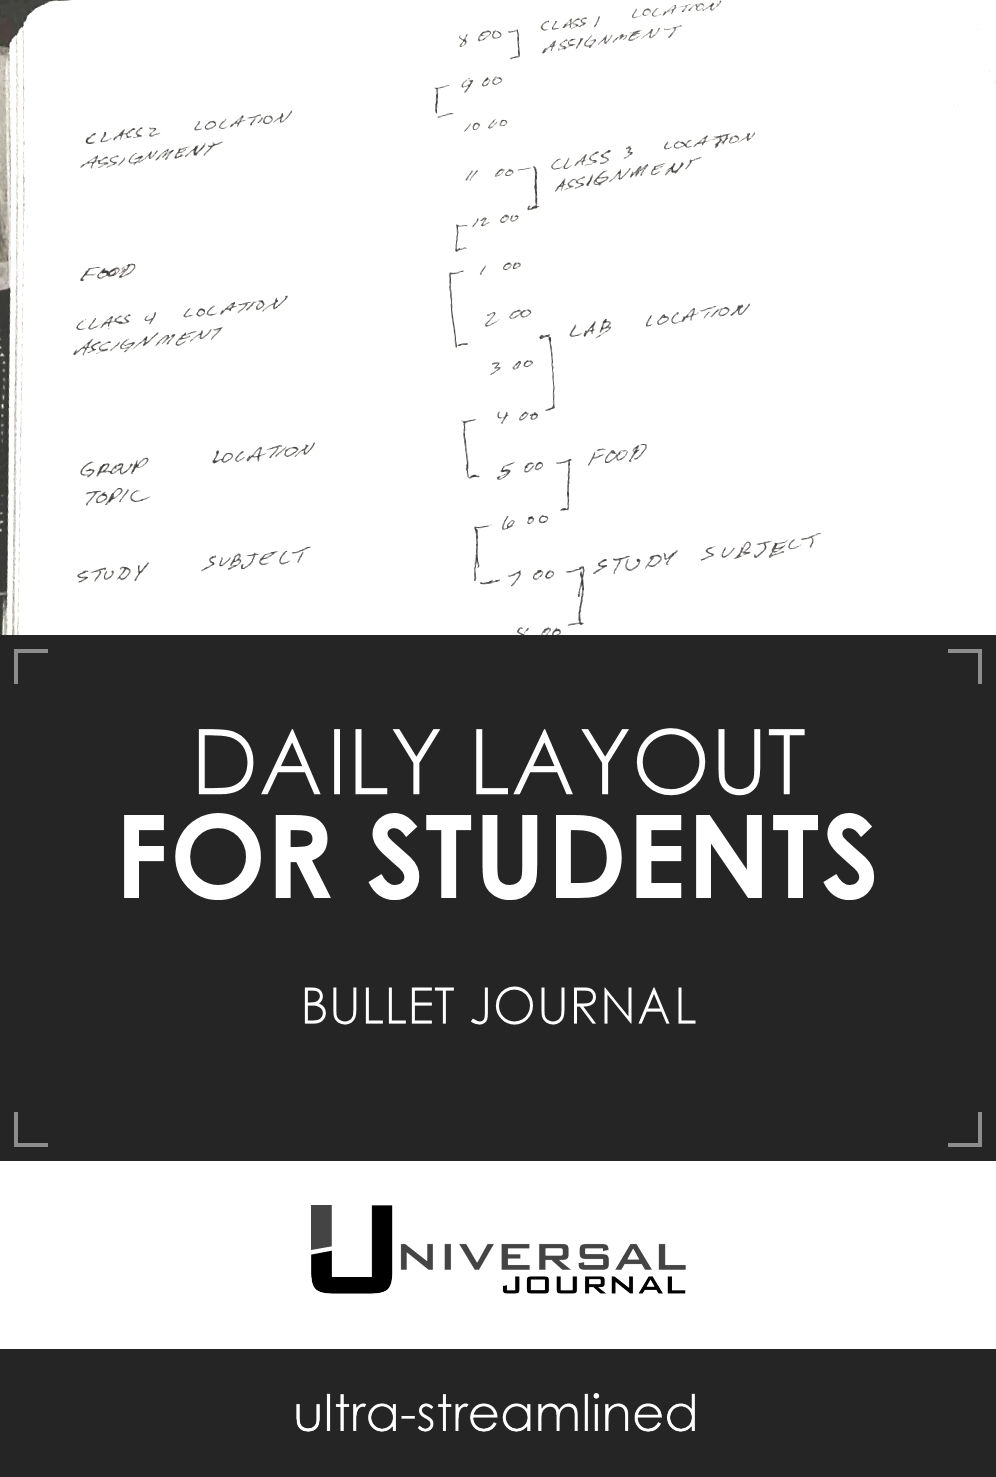 bullet journal daily layout students education